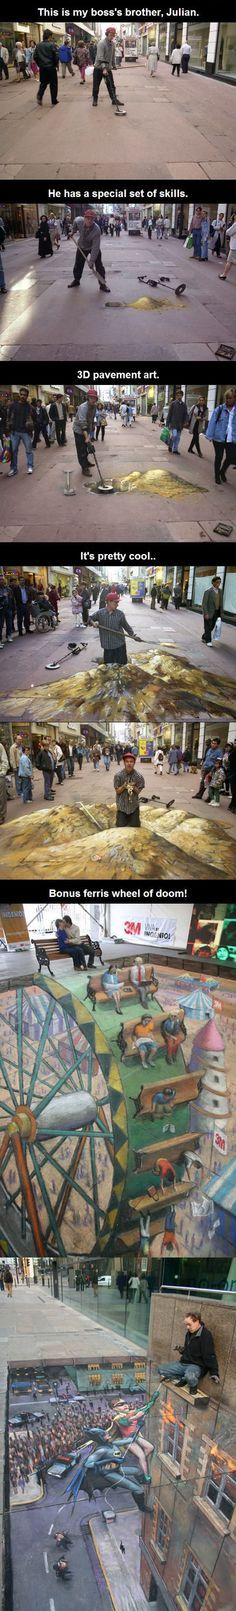 He Takes 'Gold Digger' To a Whole Different Dimension // funny pictures - funny photos - funny images - funny pics - funny quotes - #lol #humor #funnypictures